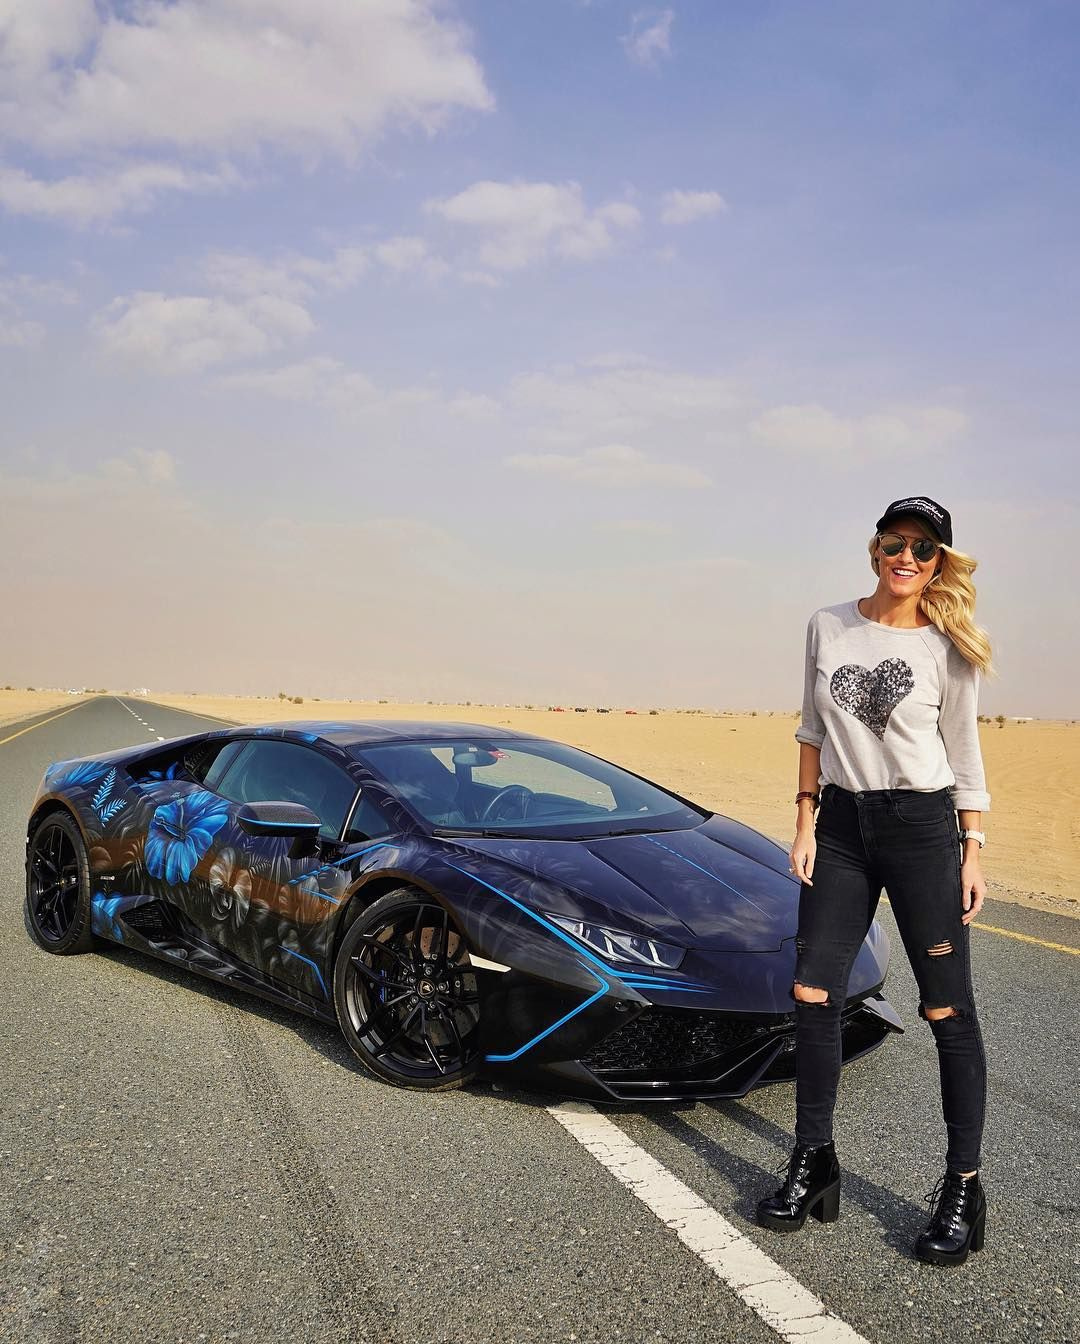 Just The Two Of Us Taking On The World How Are You Guys Lucythelambo Pic By Nikcars Lamborghini Huracan Cardip Classy Cars Super Cars Car Girls